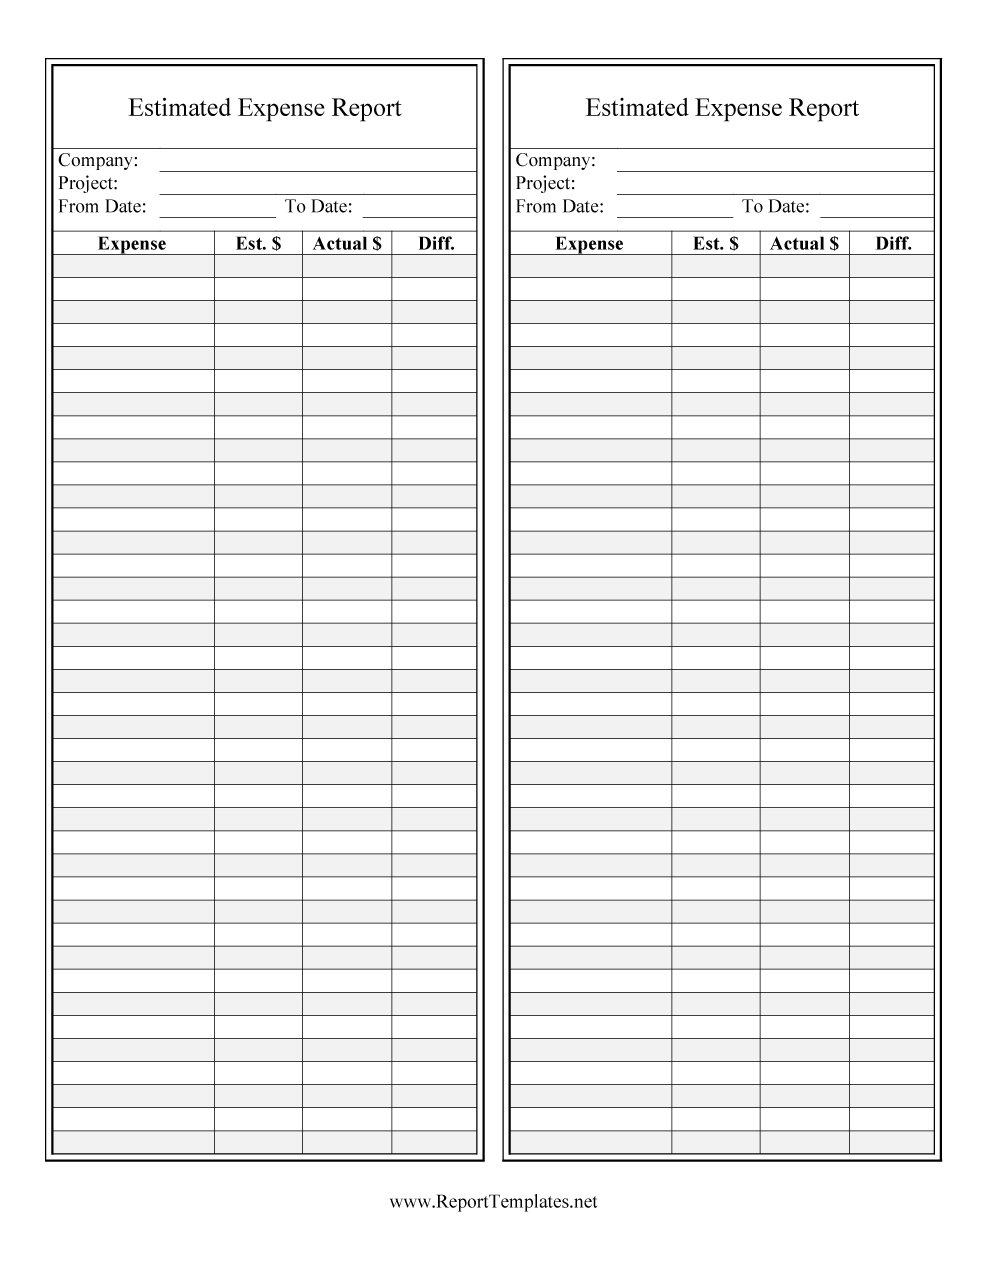 40  Expense Report Templates To Help You Save Money   Template Lab Intended For Generic Expense Report Generic Expense Report Expense Spreadshee Expense Spreadshee generic expense report